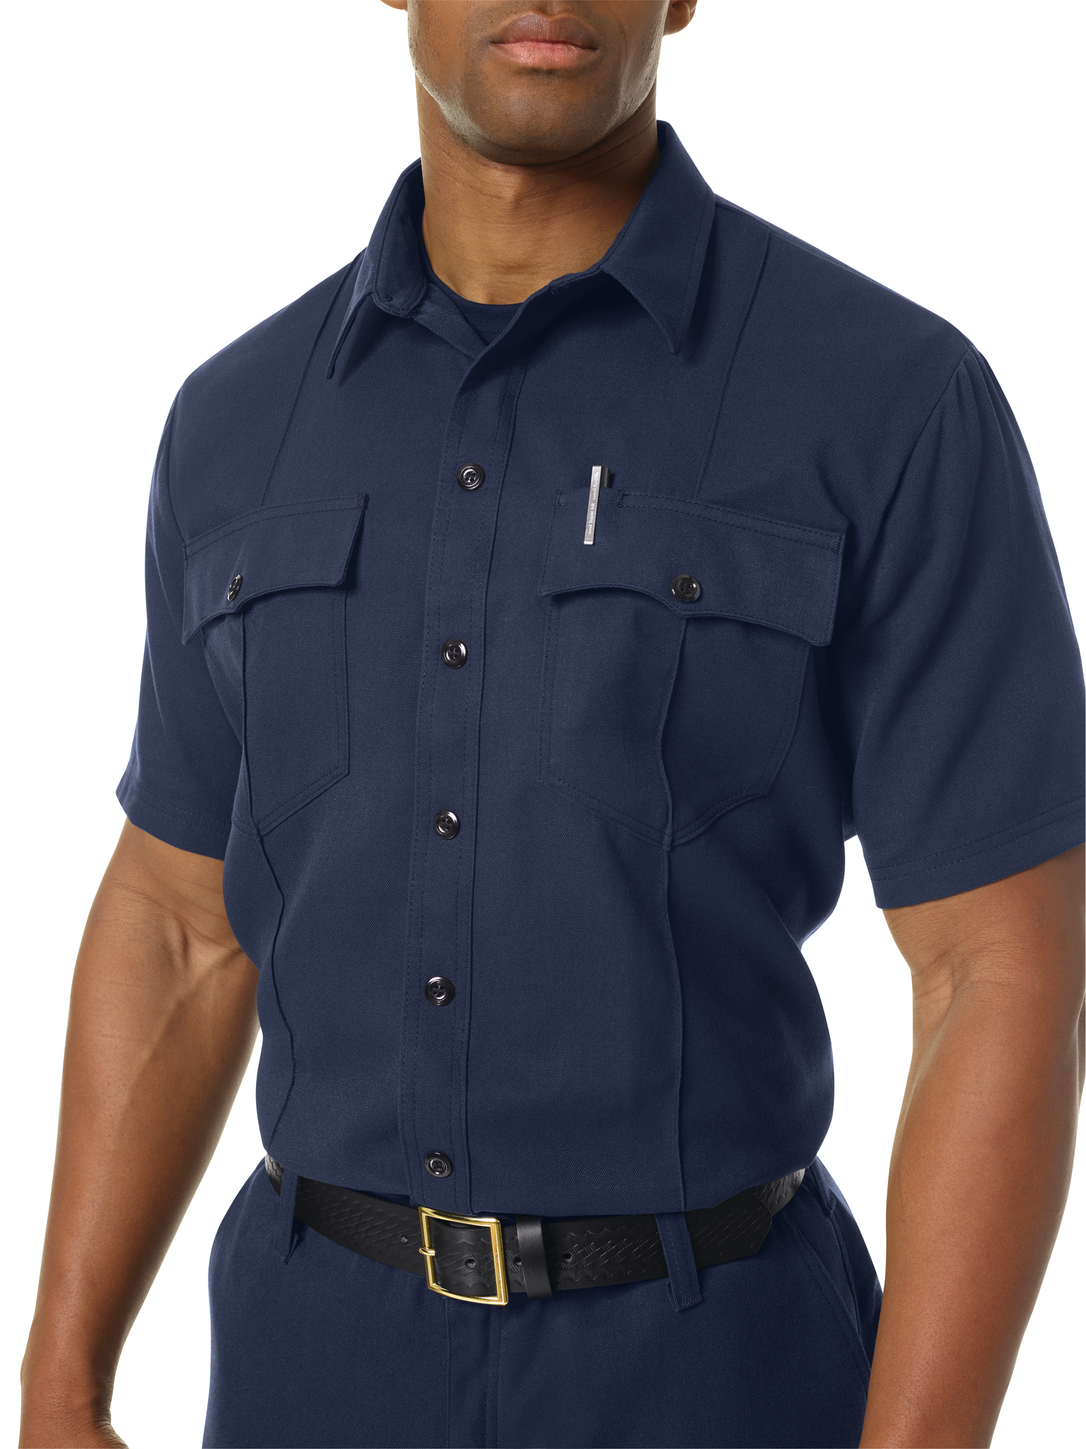 workrite-fr-shirt-fsu2-untucked-uniform-station-no-73-navy-example.png